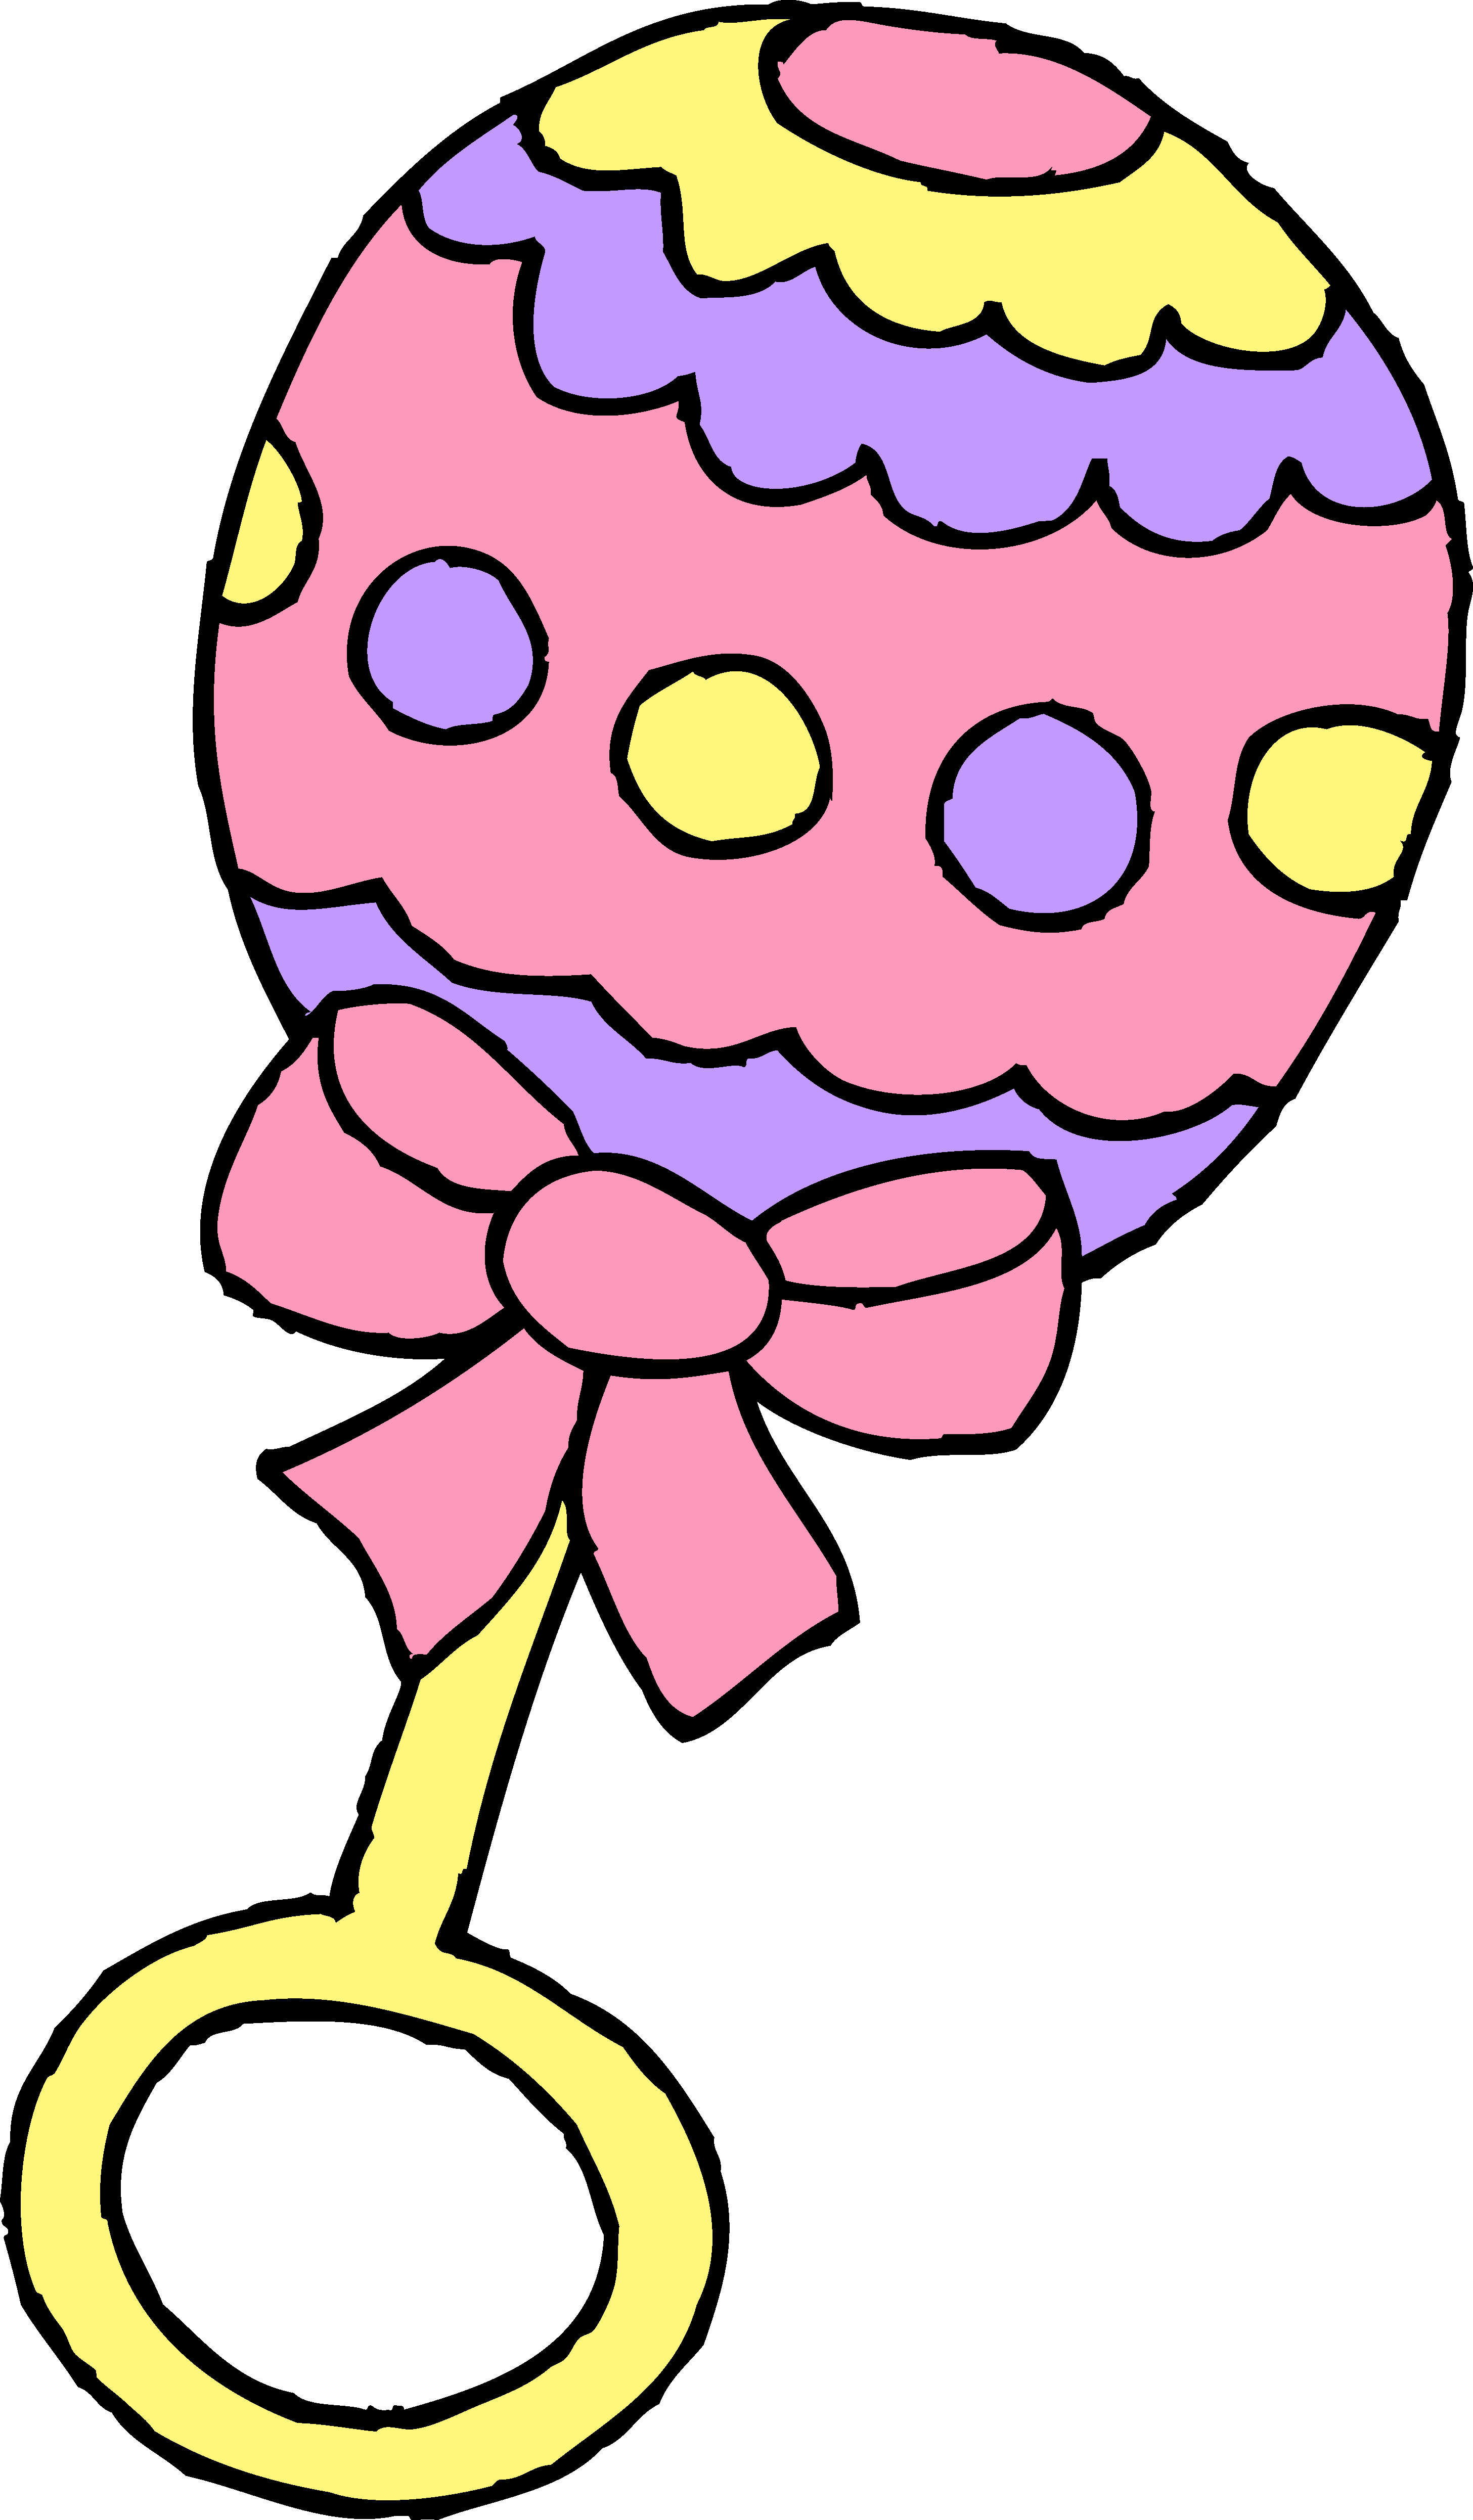 Free Baby Rattle Clipart, Download Free Clip Art, Free Clip.